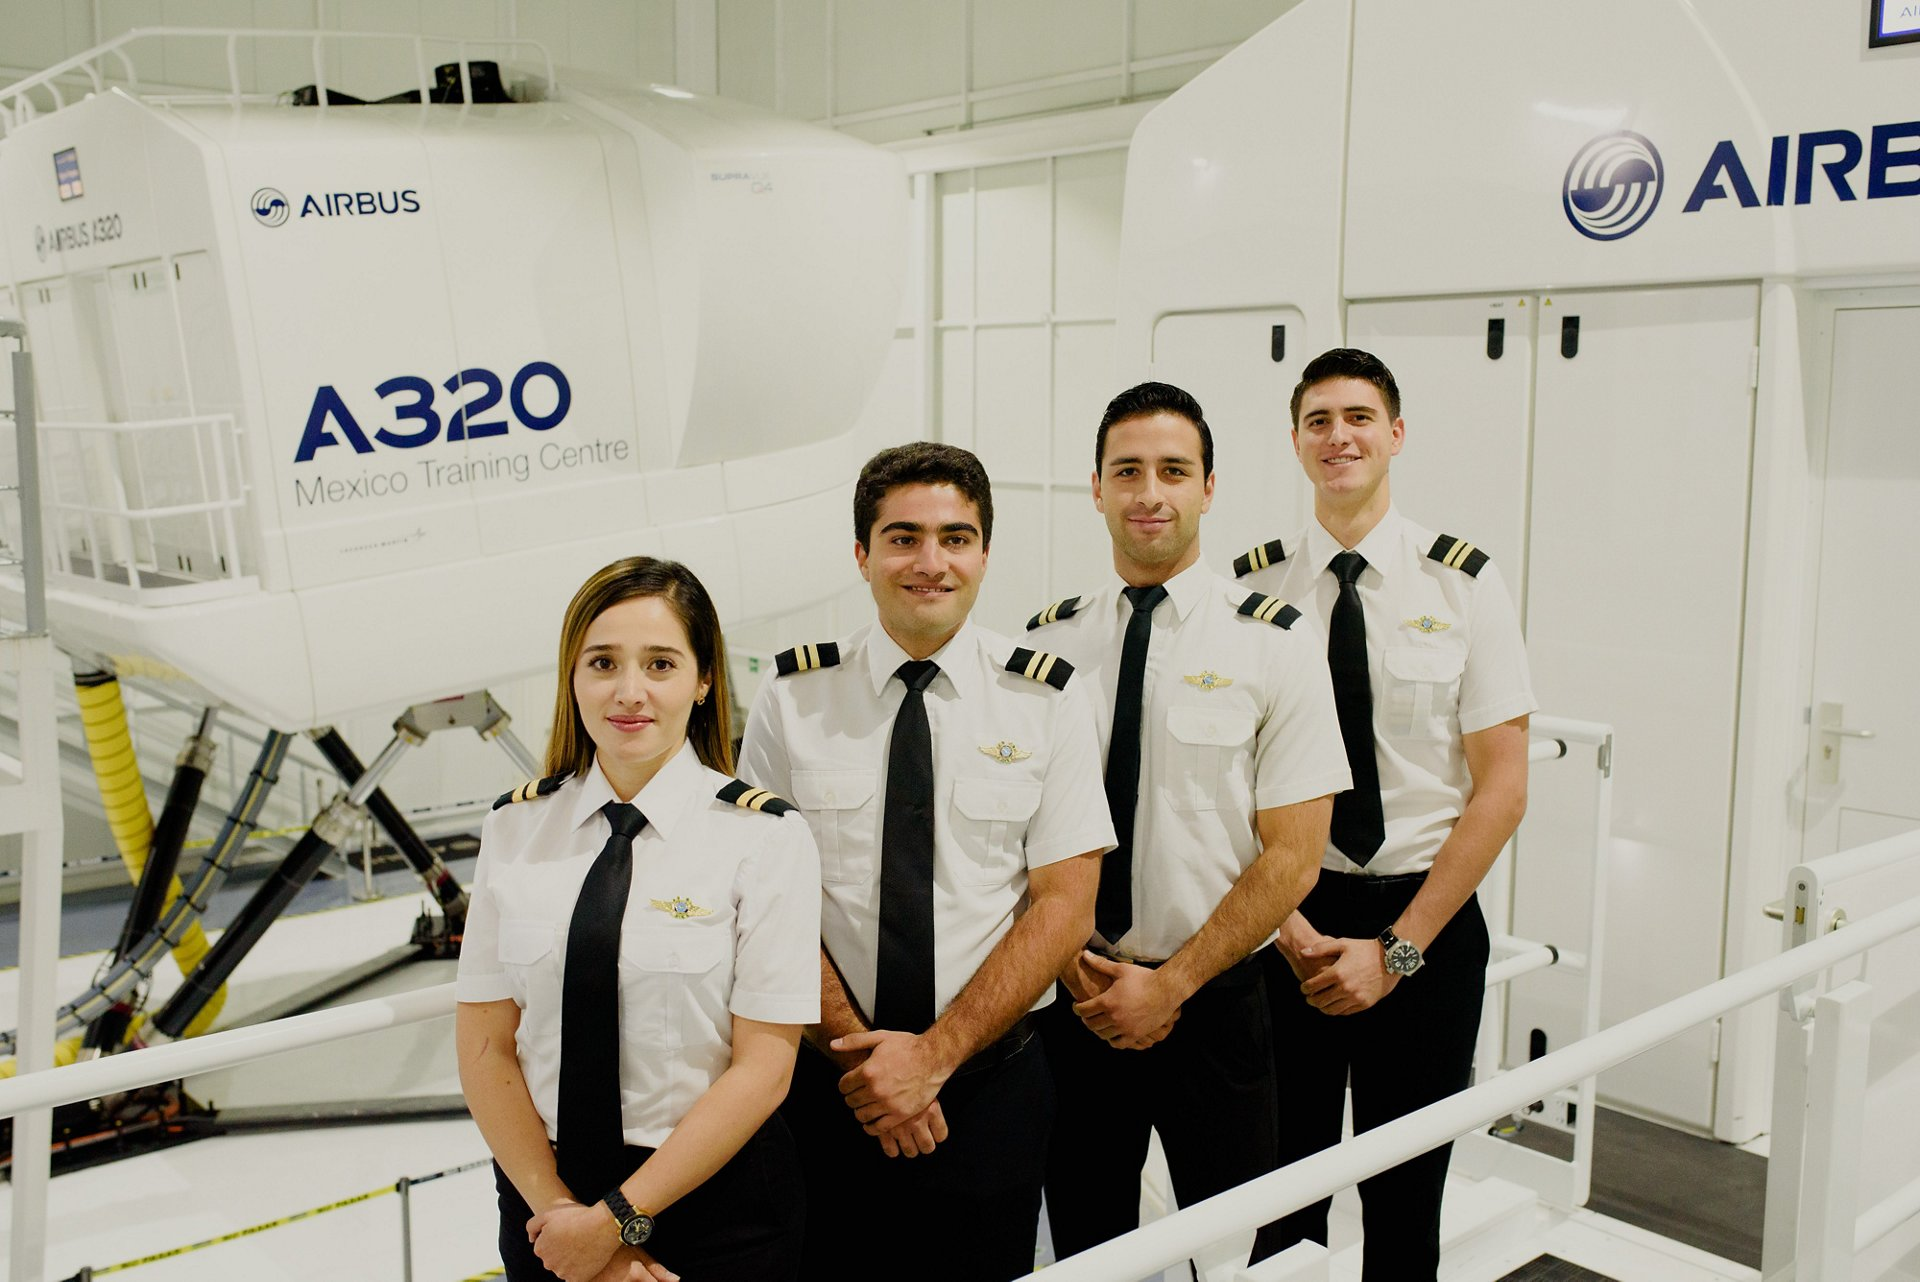 The ab initio Pilot Cadet Training Programme, co-developed by Airbus and France's ENAC civil aviation university, supports airline customers in contributing to the long-term availability of qualified pilots